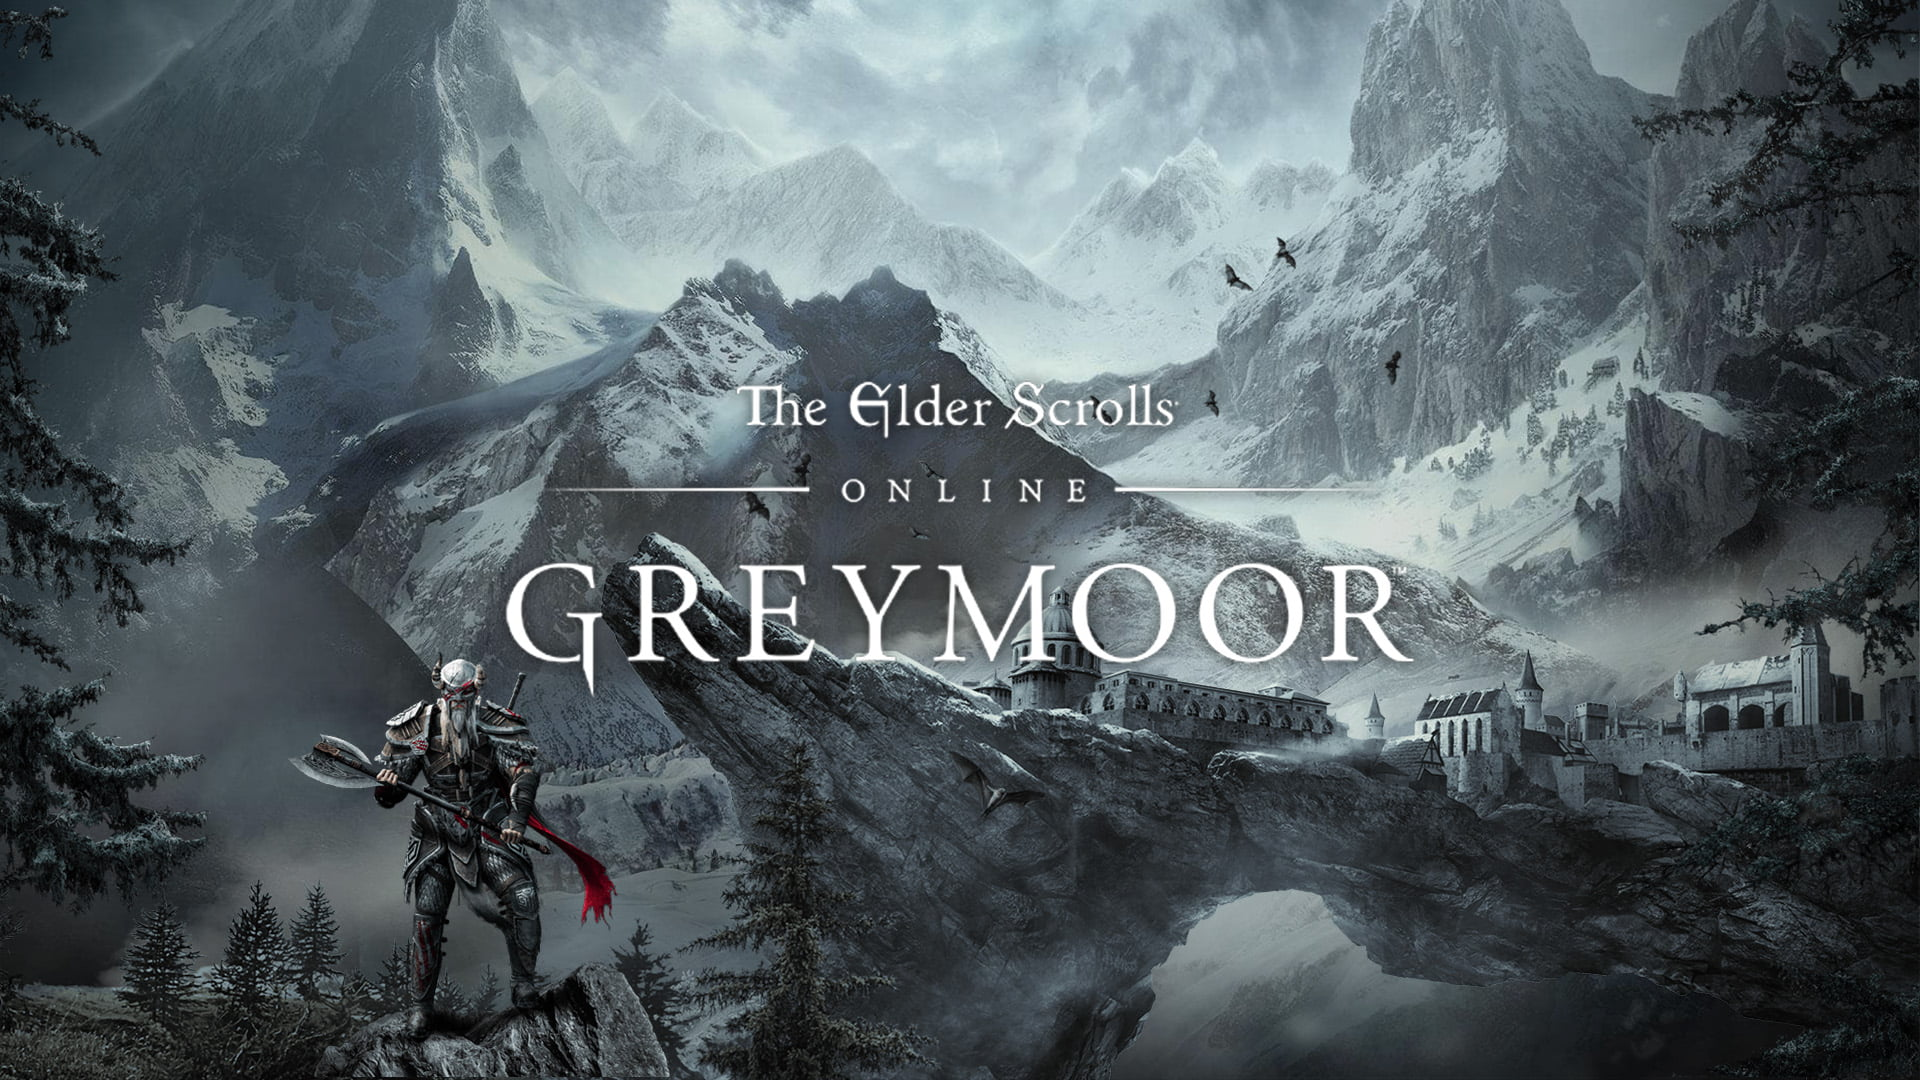 The Elder Scrolls Online: Greymoor Official website